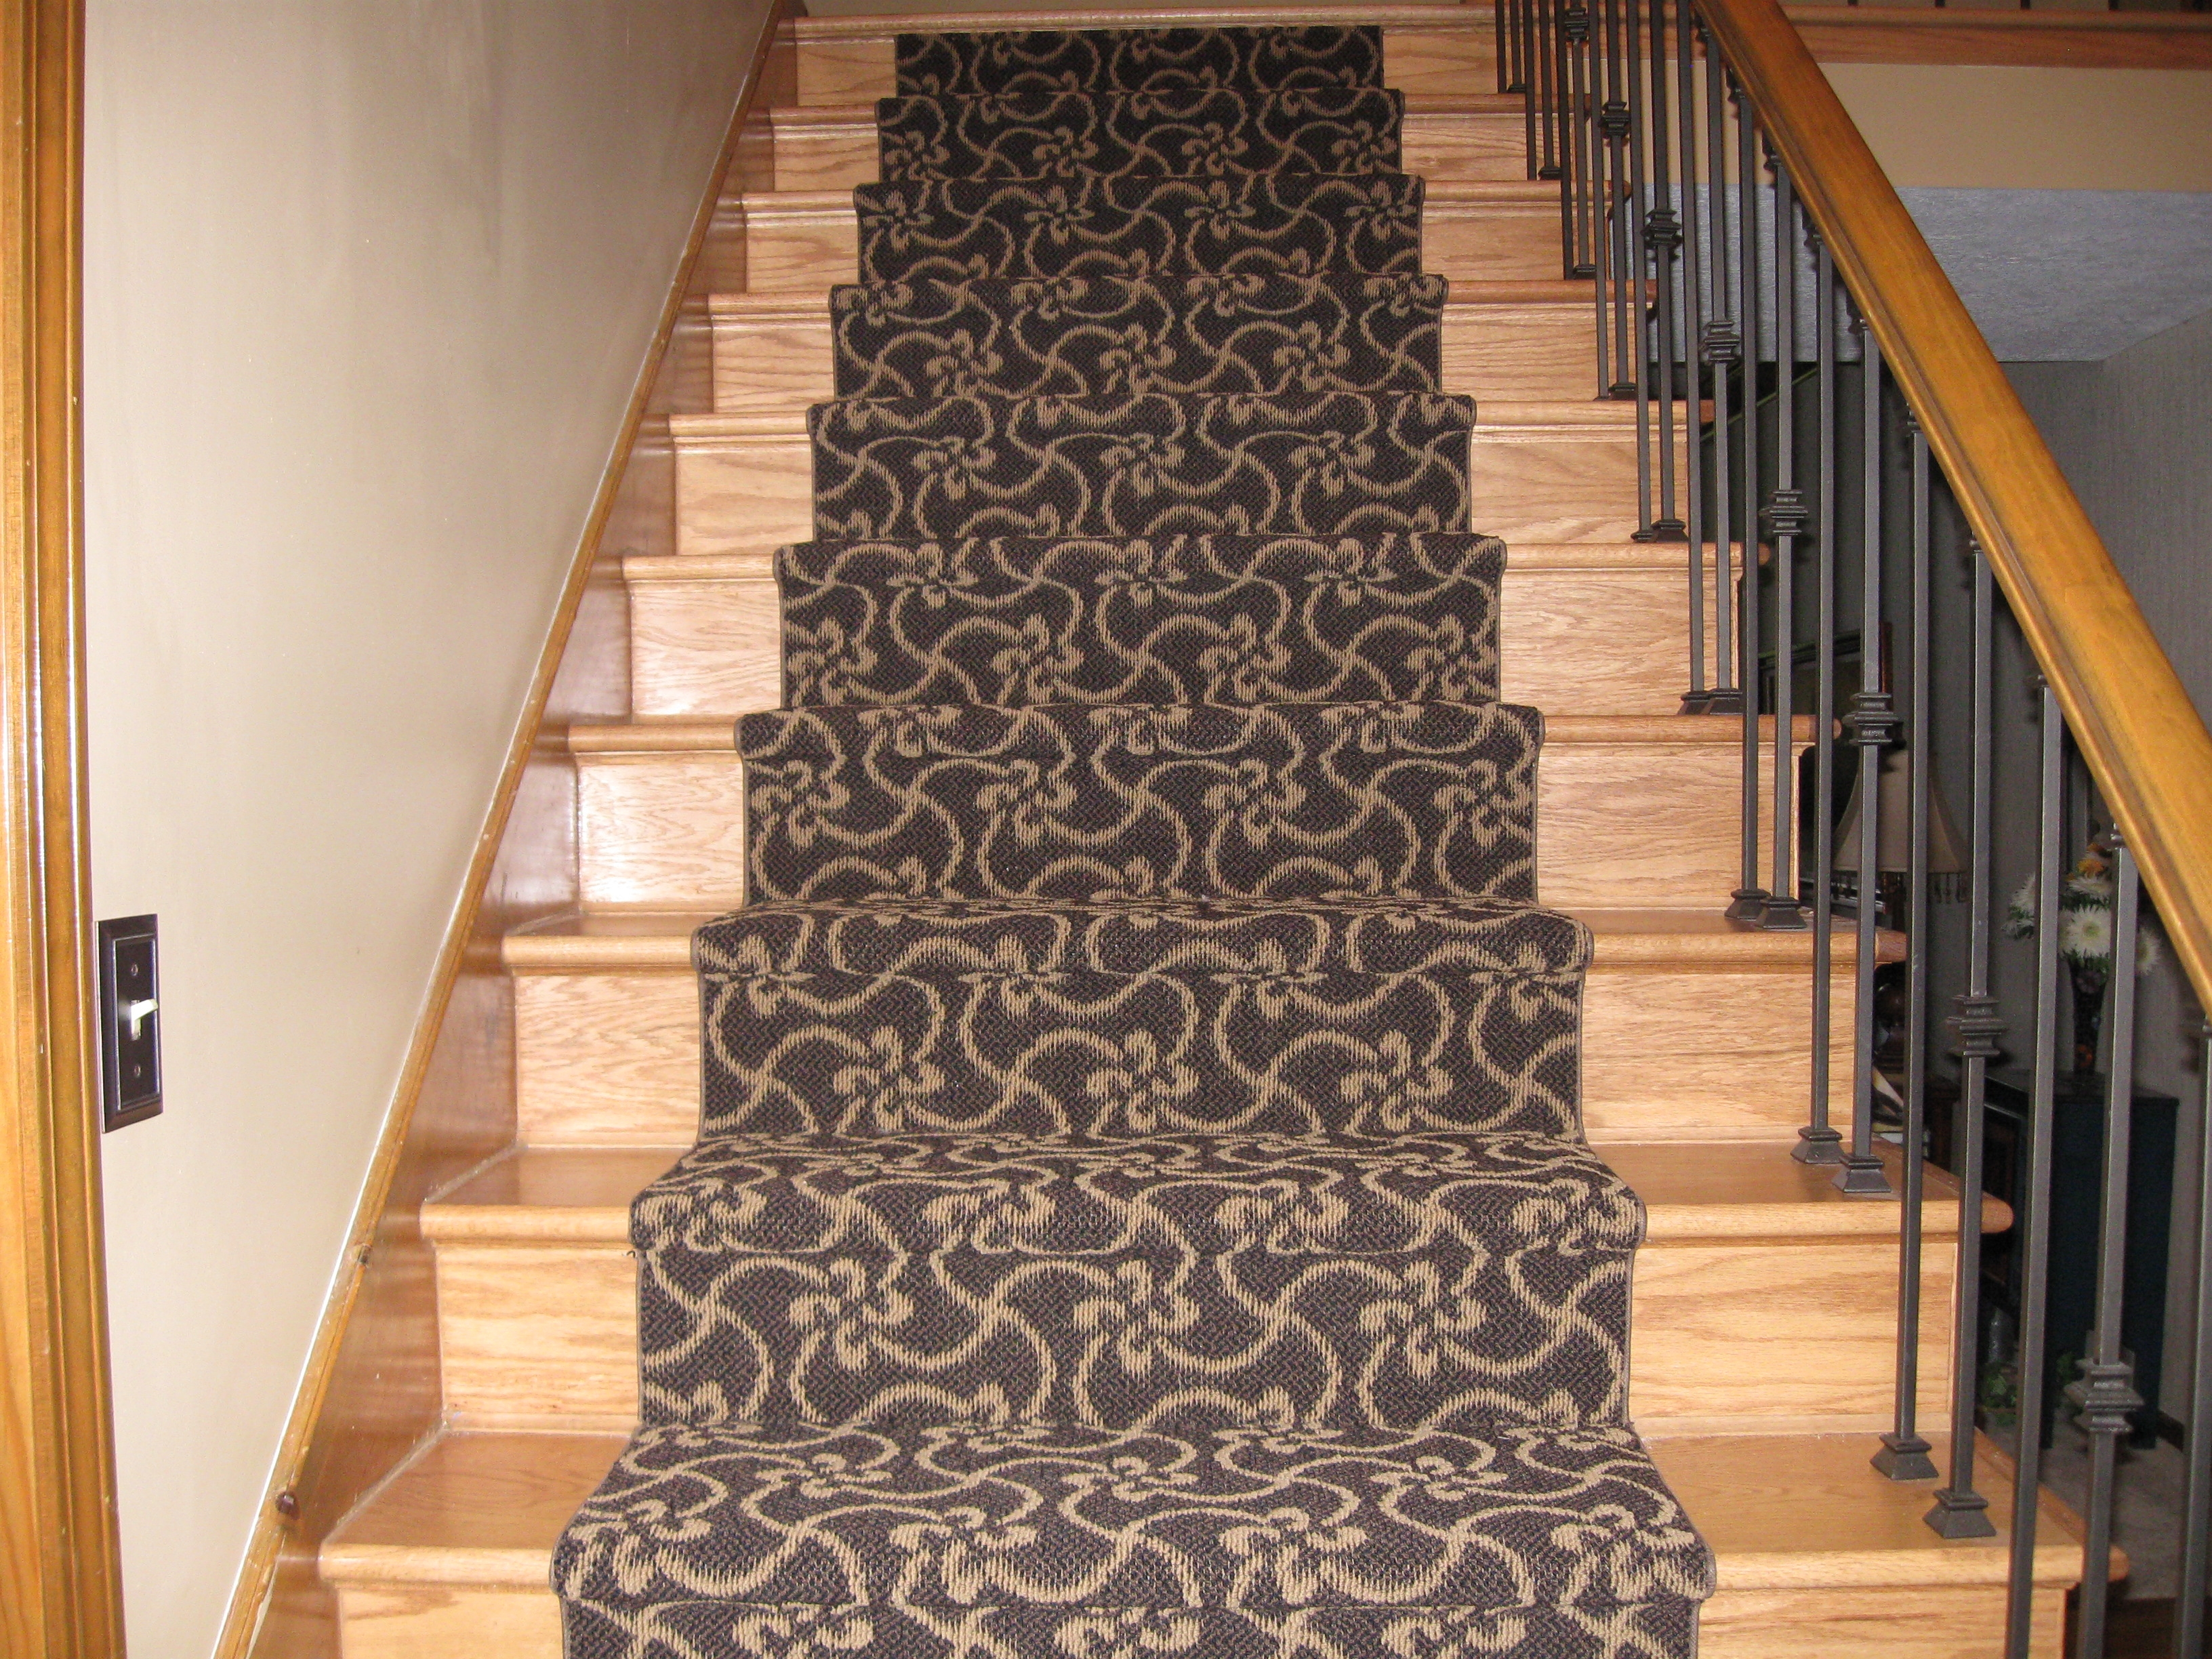 Flooring Pretty Stair Treads Carpet For Stair Decoration Idea With Carpet Stair Treads For Dogs (#13 of 20)